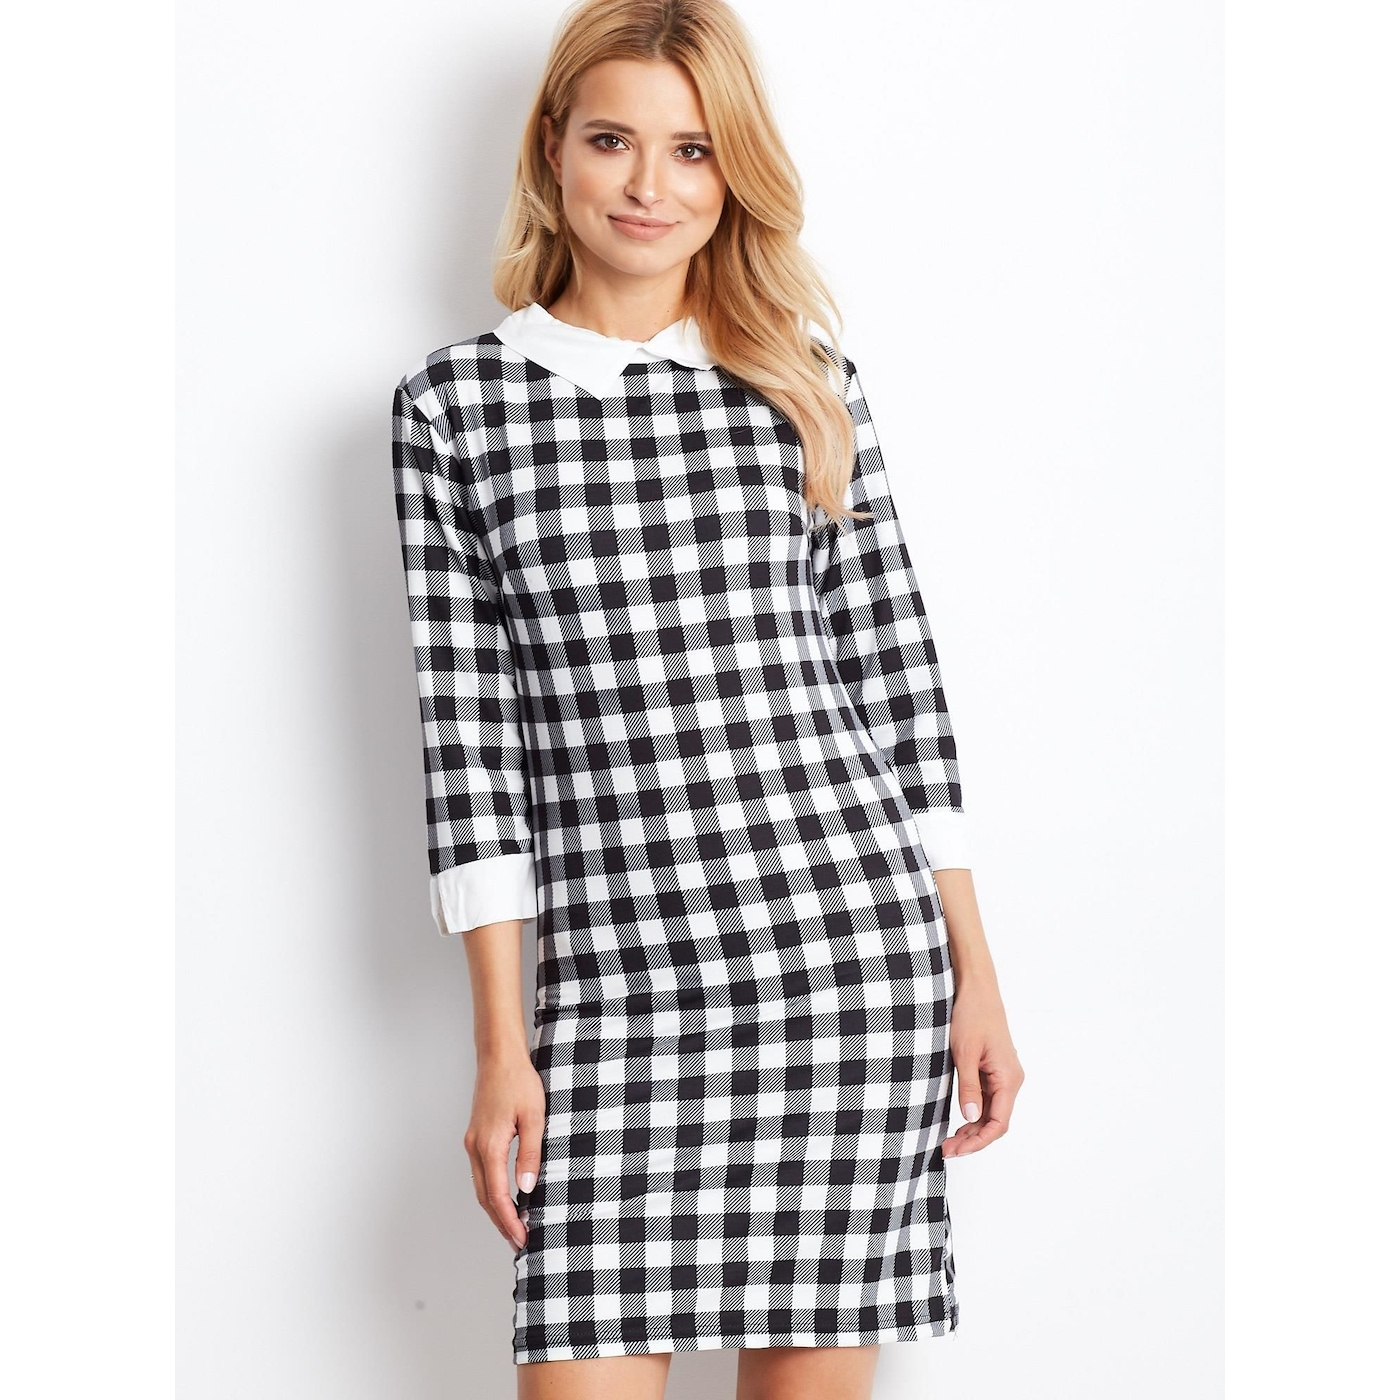 Black and white checkered dress with a collar